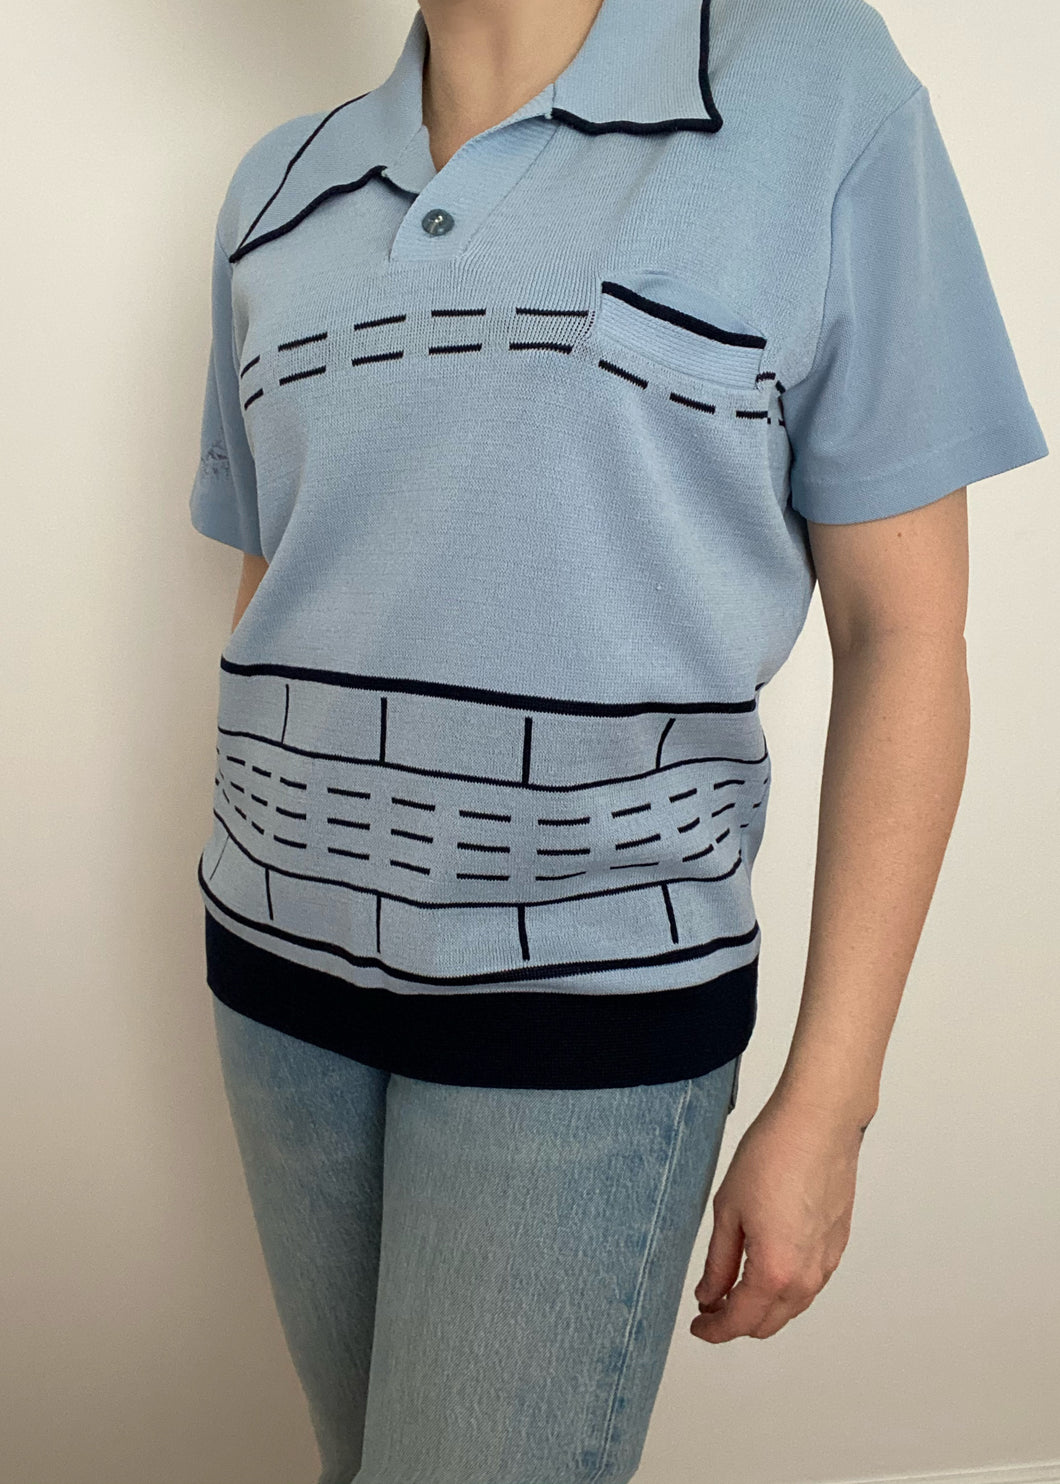 70's Blue Striped Collared Tee